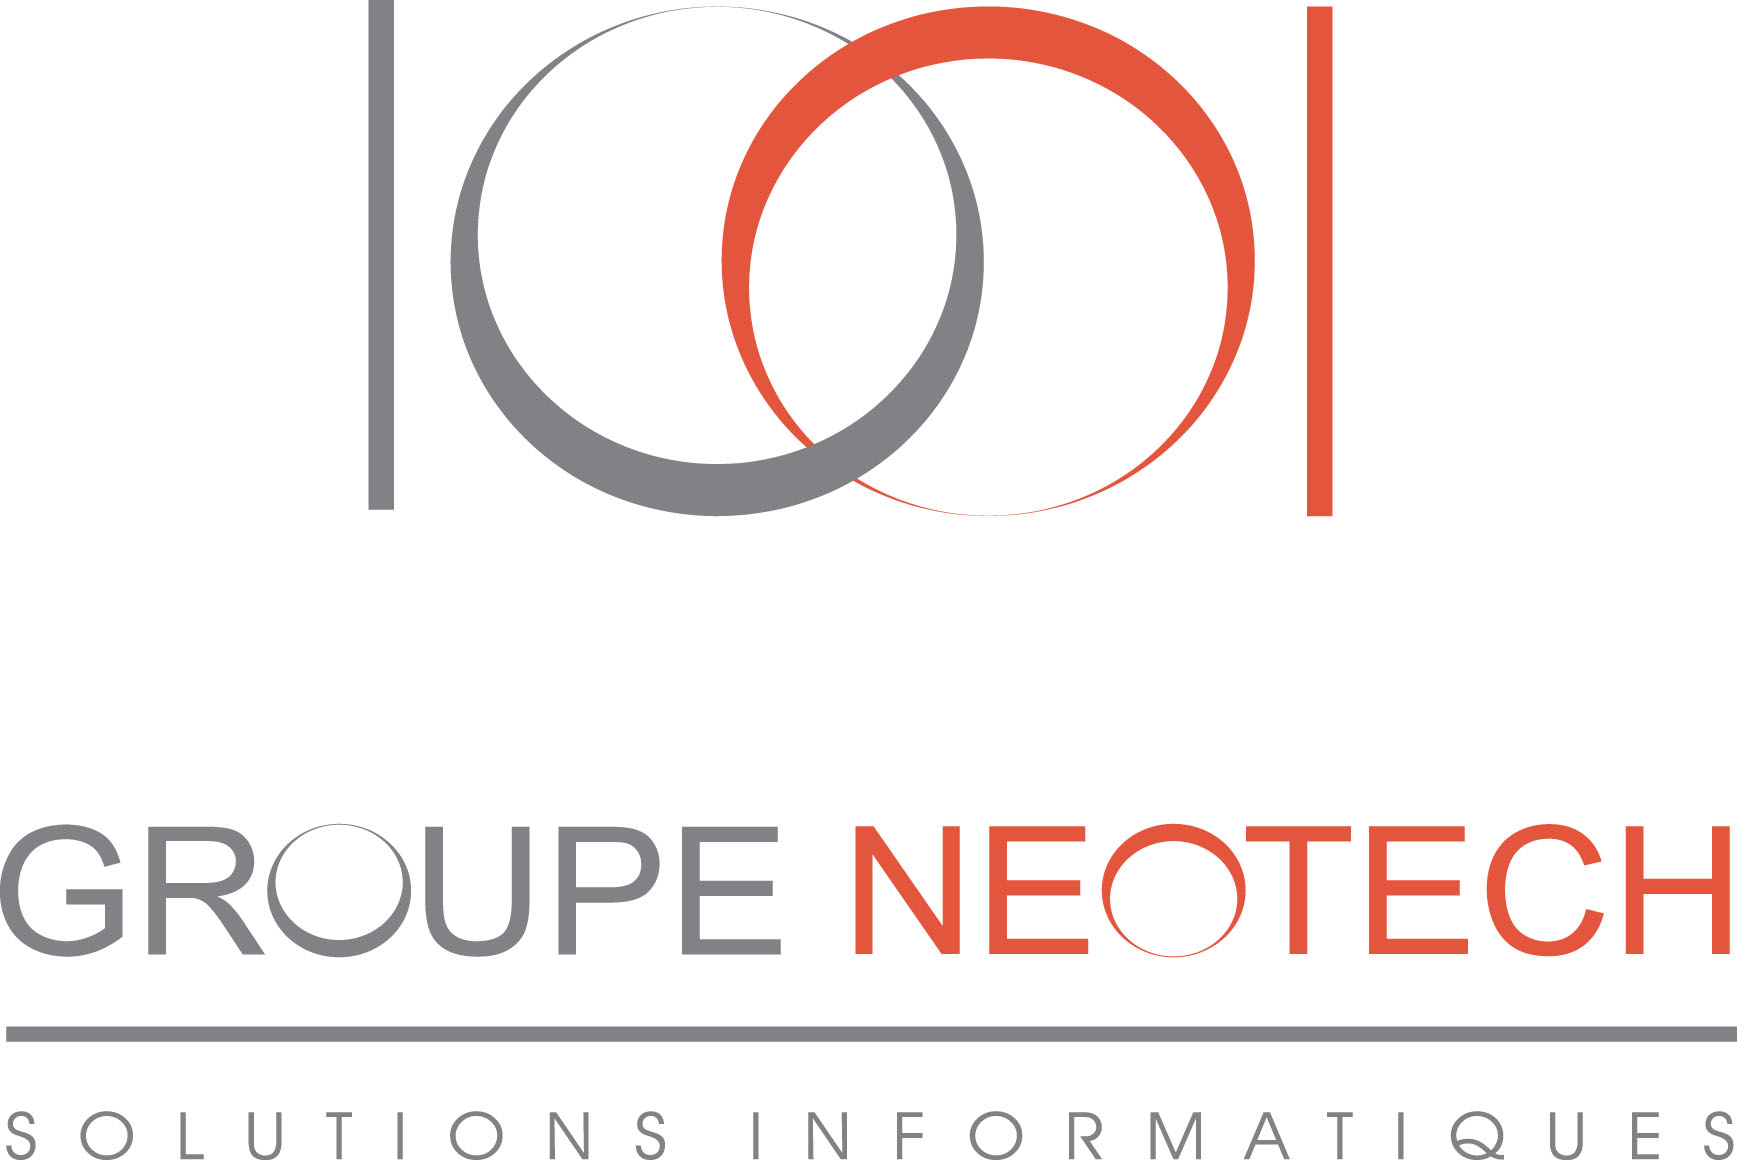 GROUPE NEOTECH